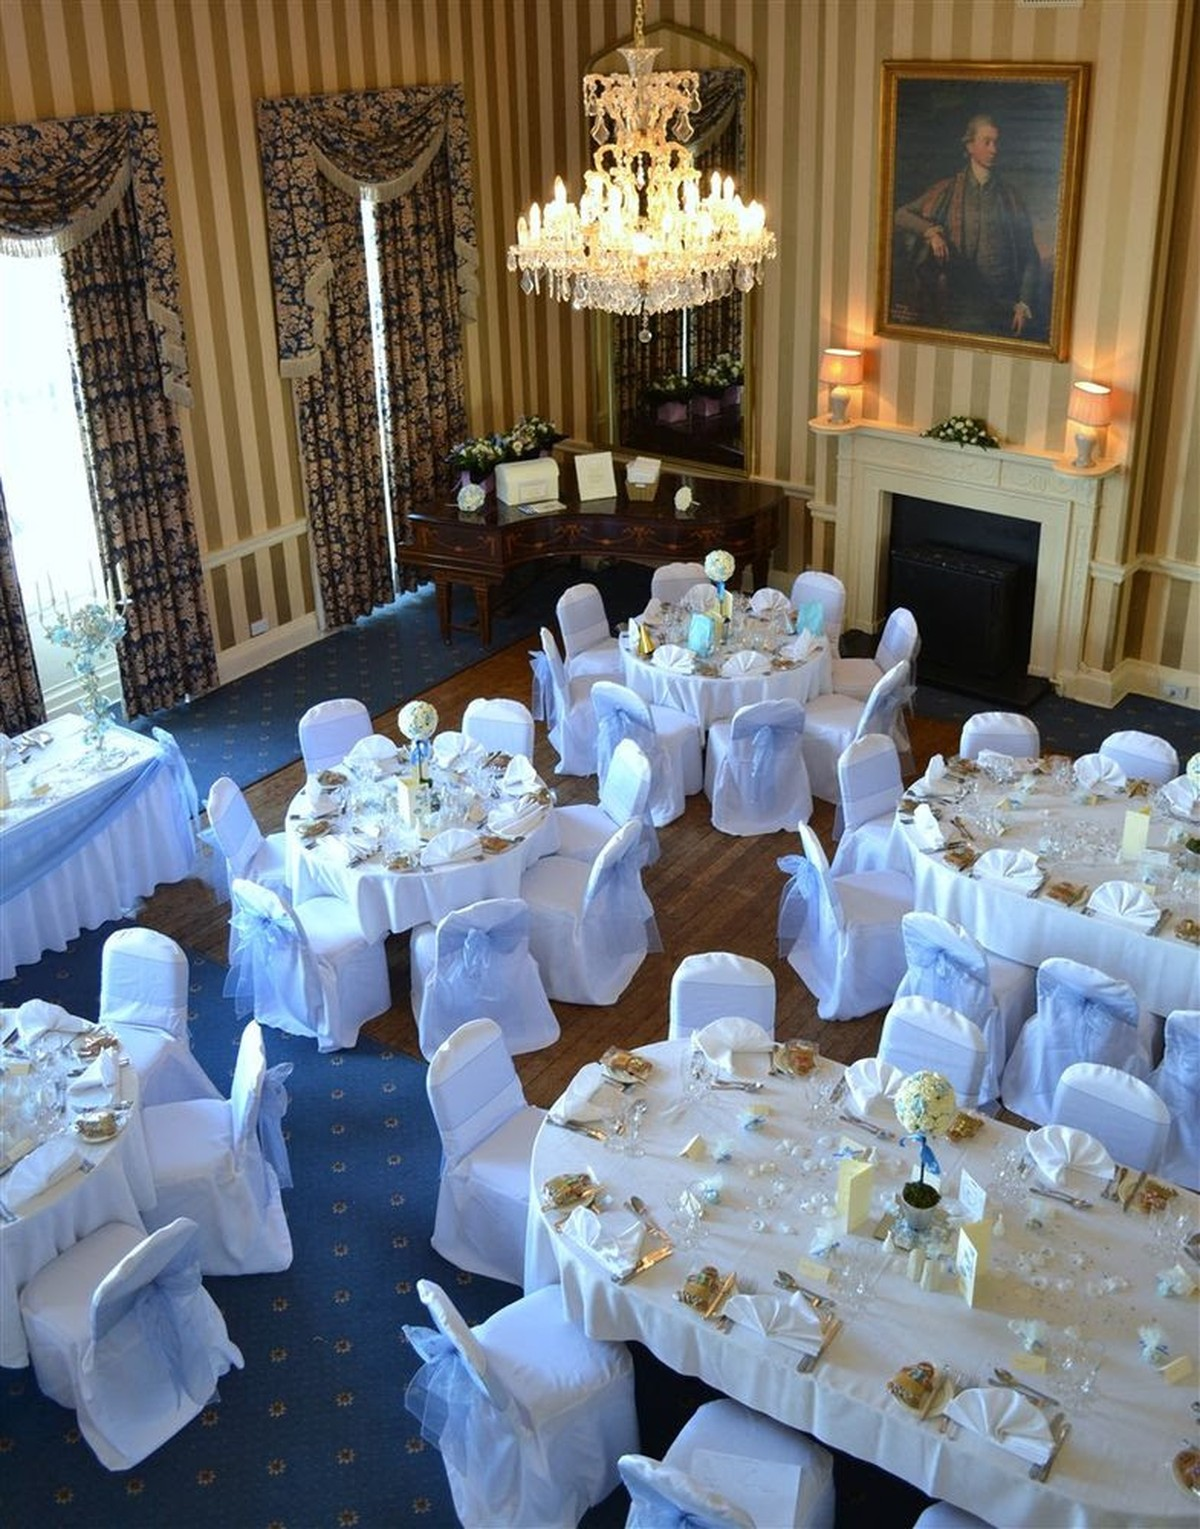 used wedding chair covers for sale uk grey bedroom tub profitable business cover and venue decoration quality sashes table runners